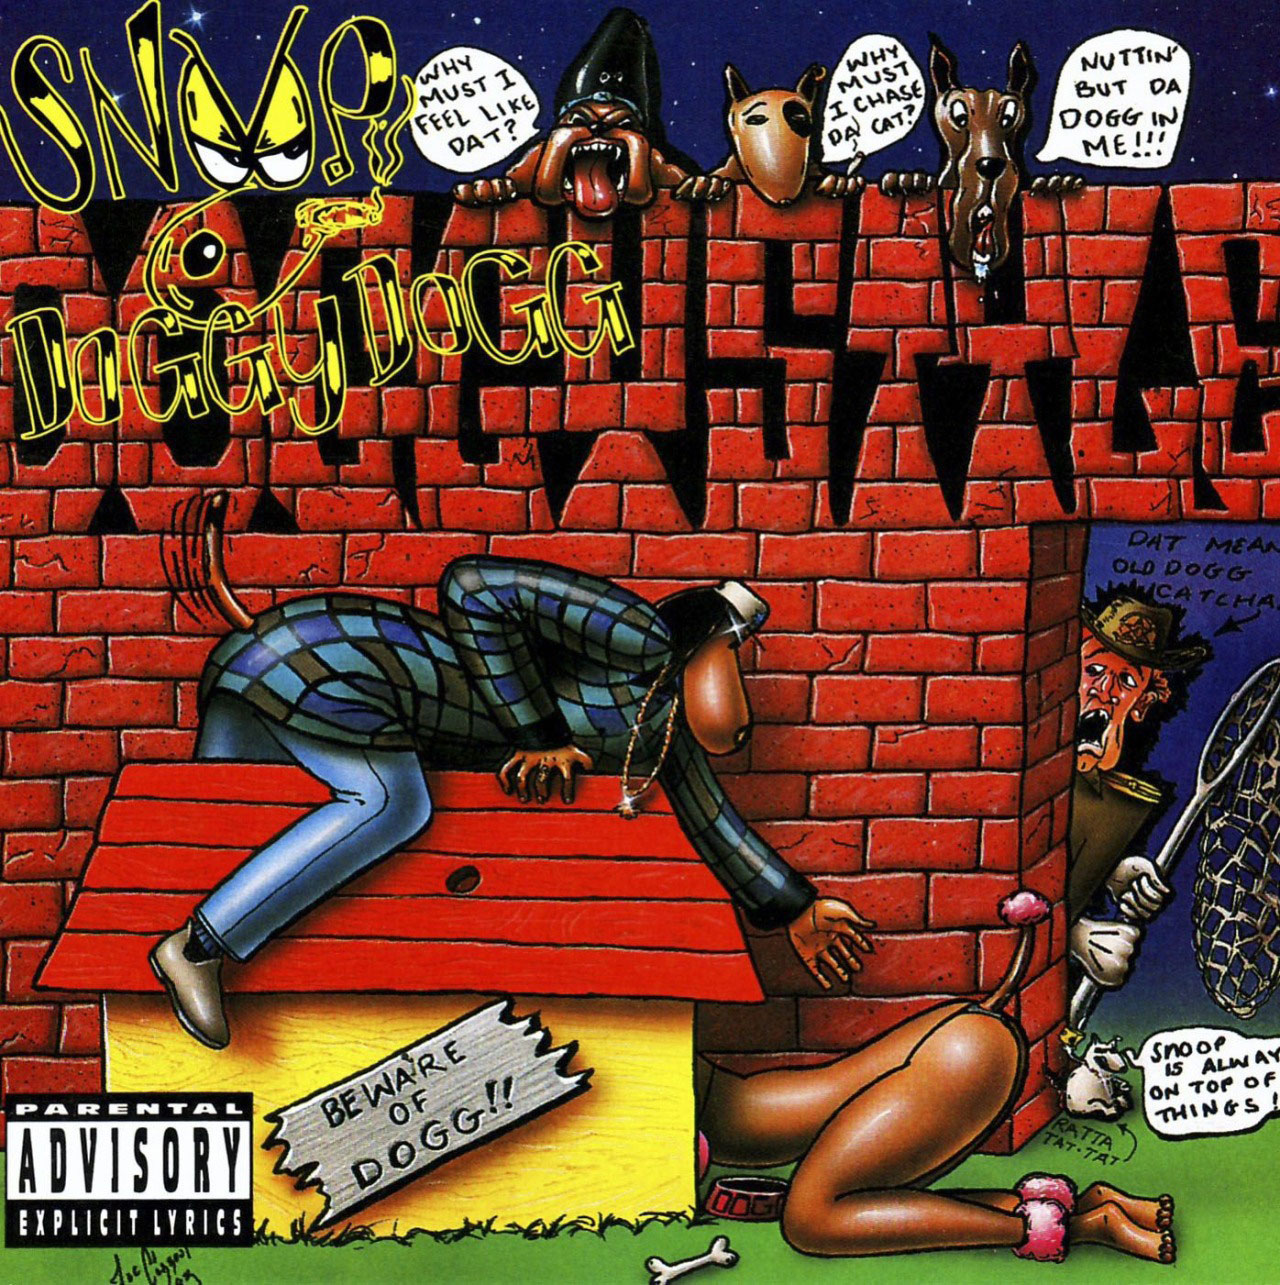 Doggystyle is the debut studio album by American West Coast hip hop artist Snoop Doggy Dogg, released by Death Row Records and Interscope Records on November 23, 1993.